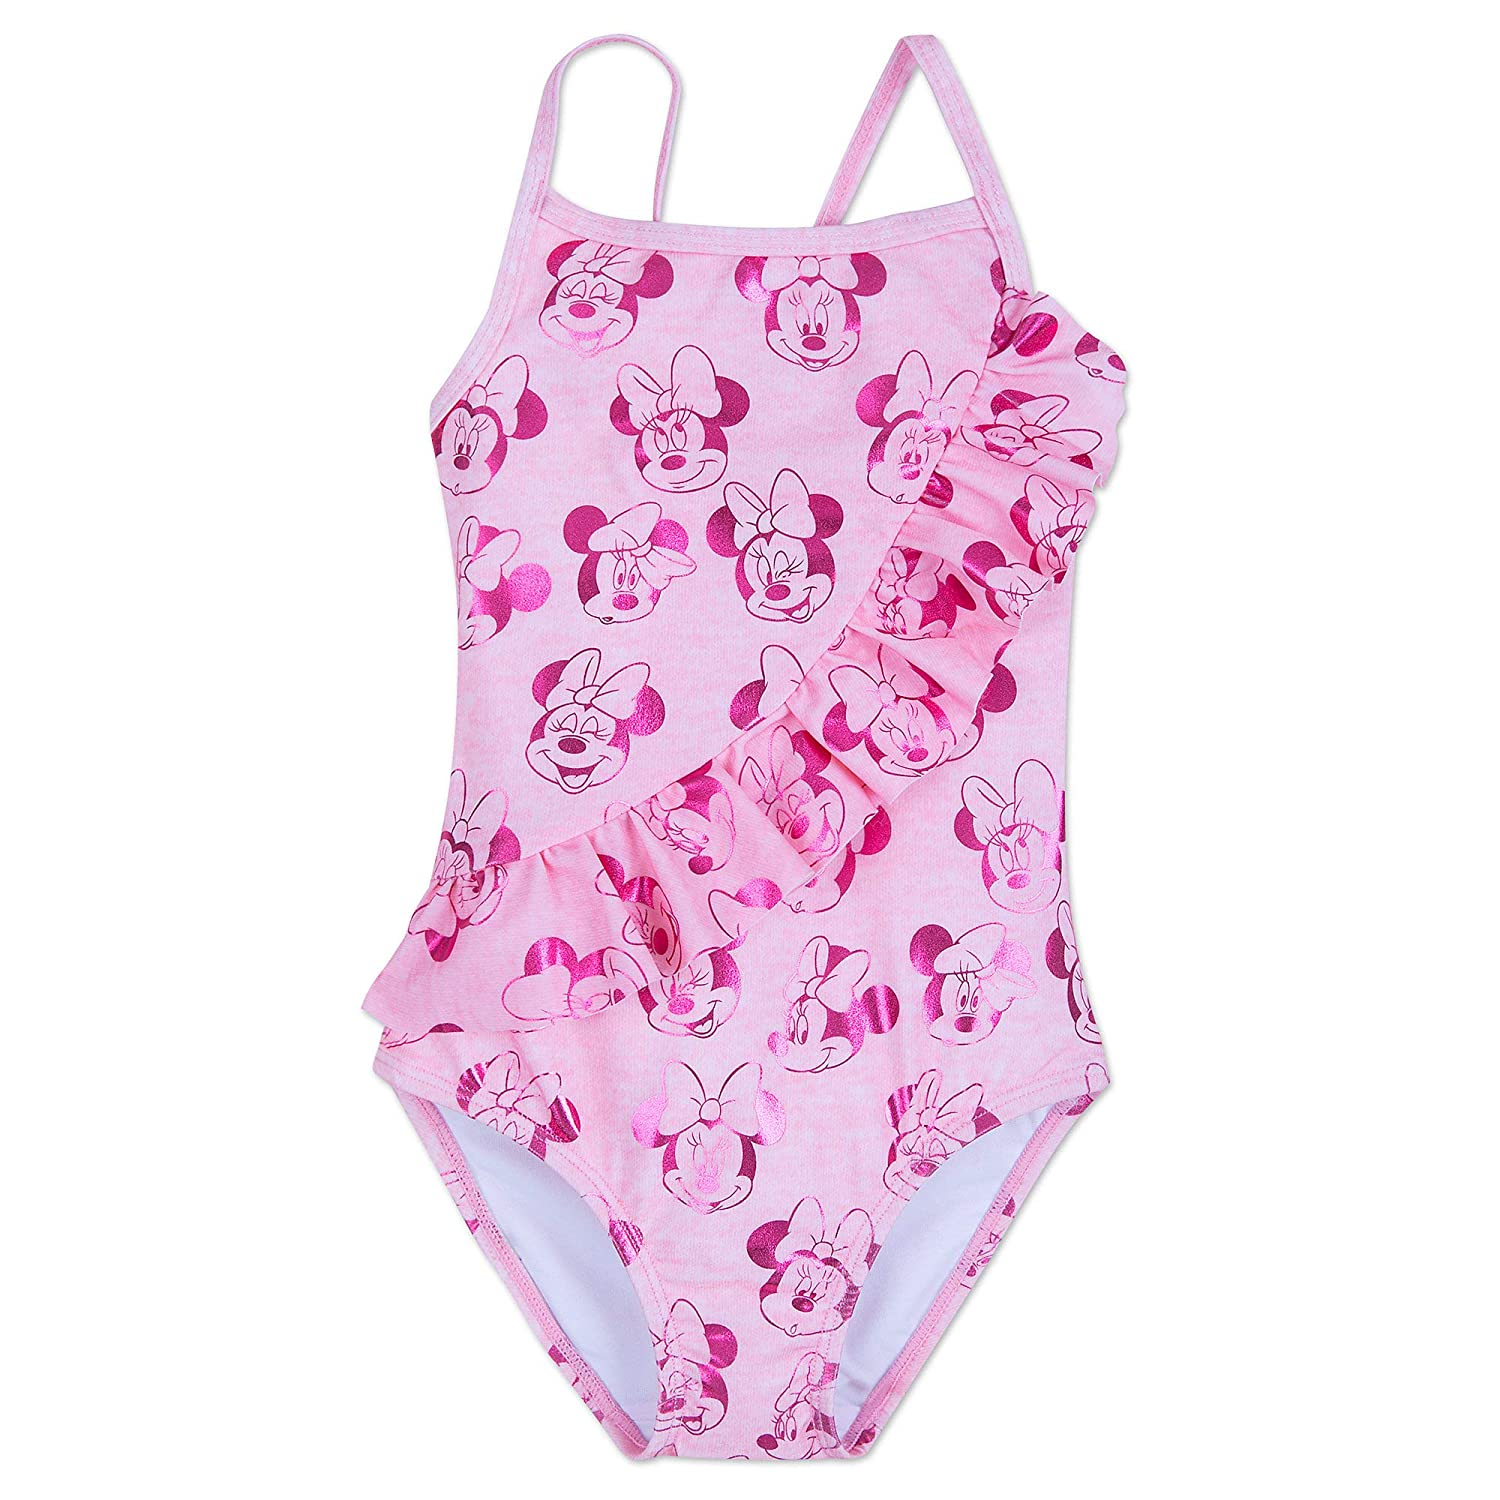 Disney Minnie Mouse Swimsuit for Kids Pink